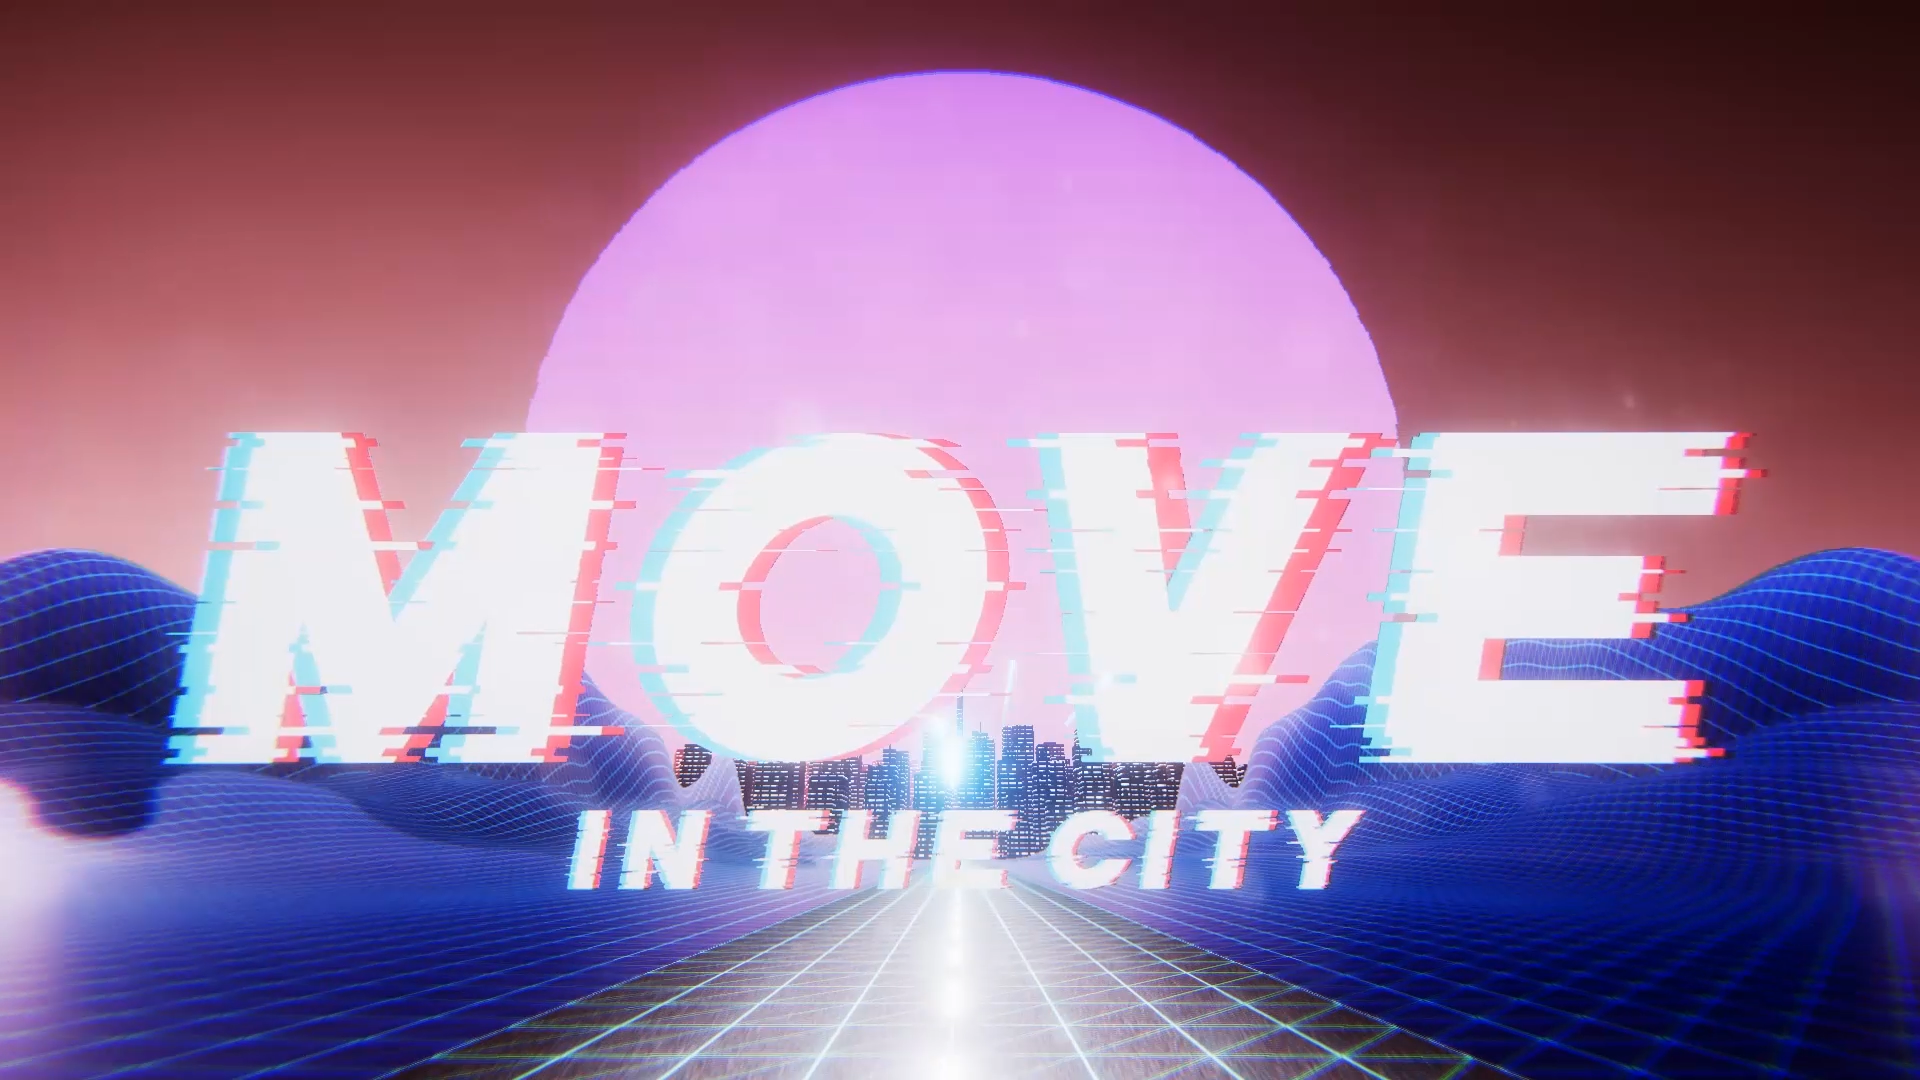 Move In The City